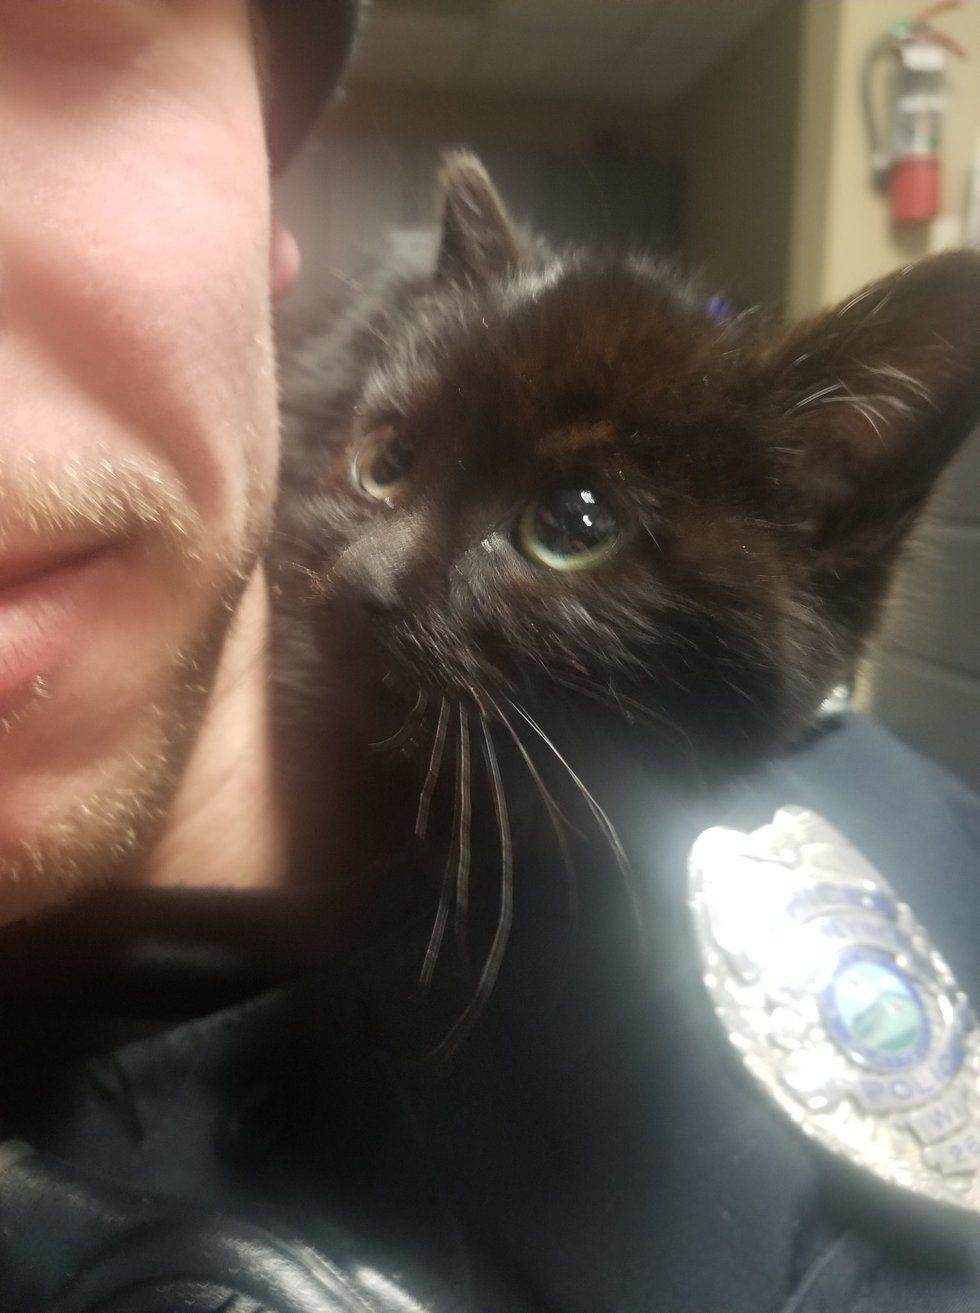 Officer Saves Kitten Stuck In Snow The Kitty Climbs Onto Him And Insists On Going Home With Him Love Meow Kitten Rescue Kitten Kitten Adoption